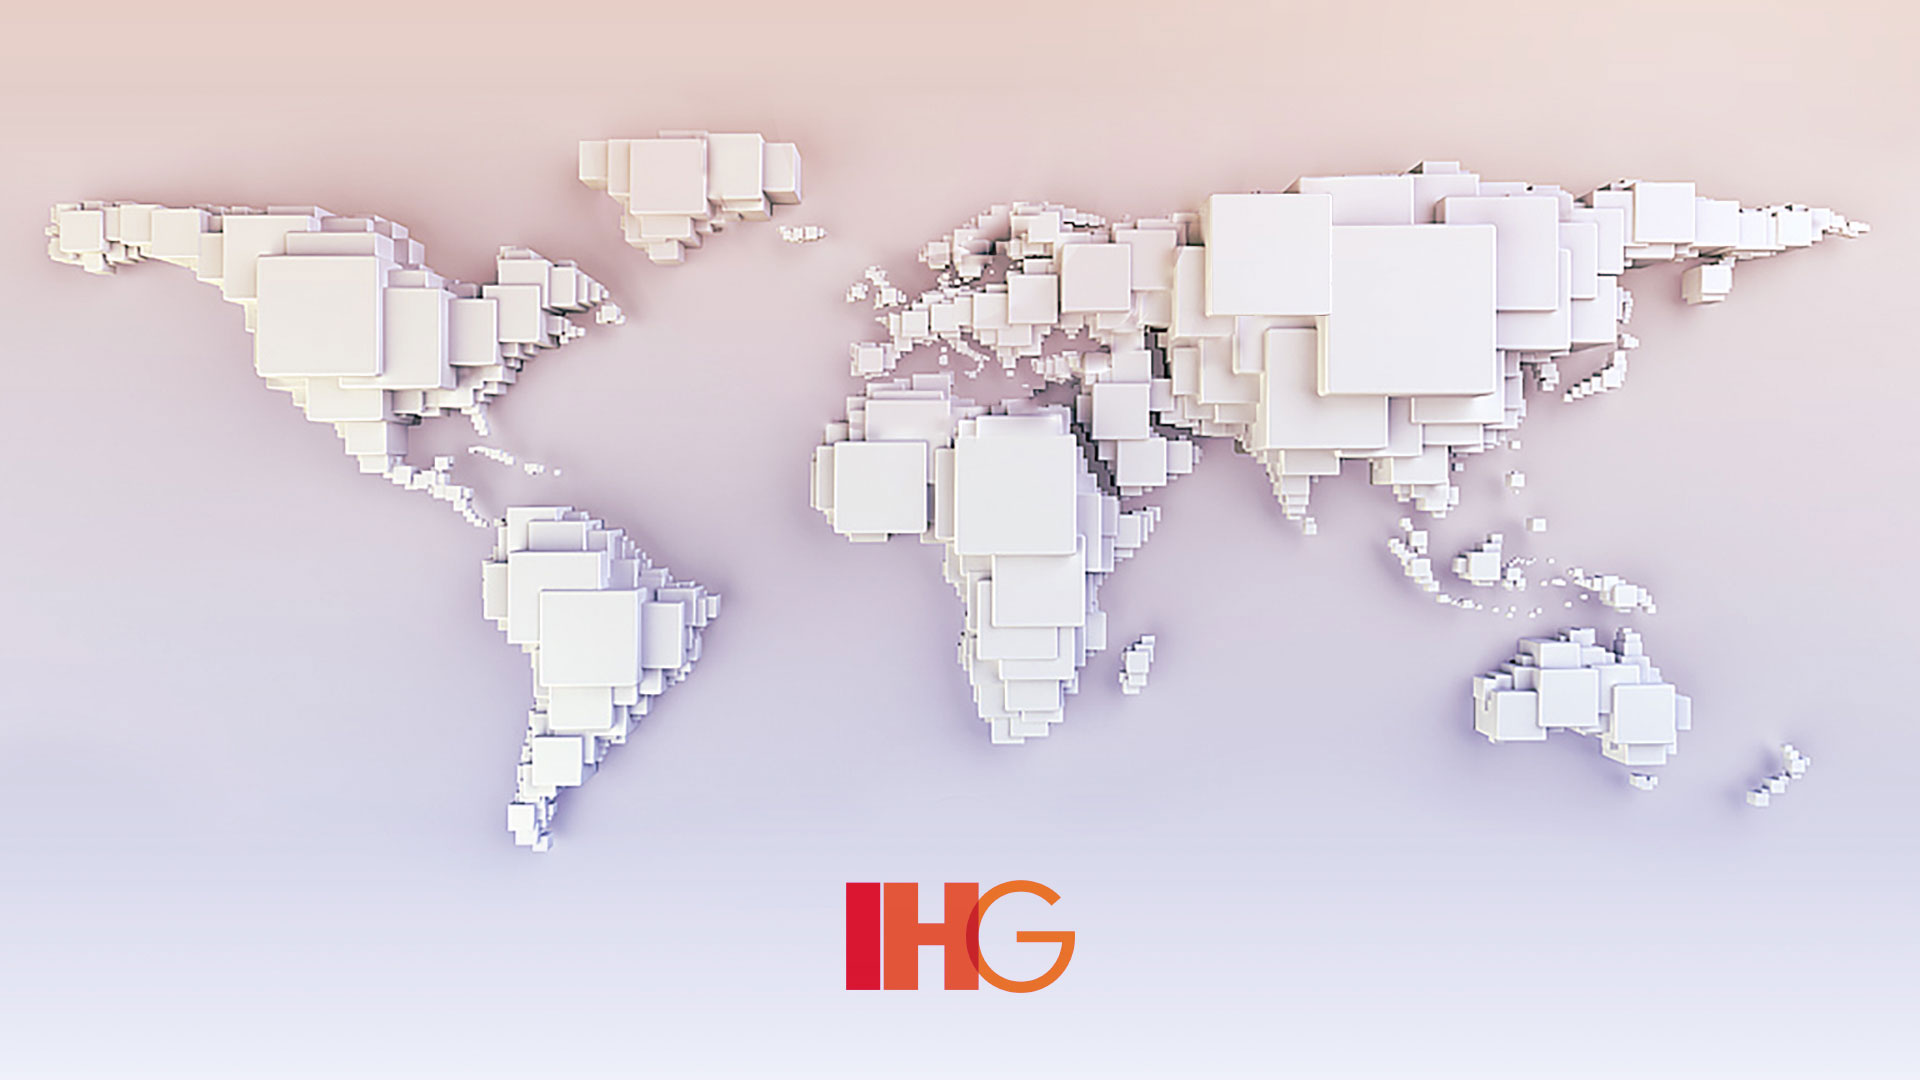 IHG © Holey & Moley Ltd